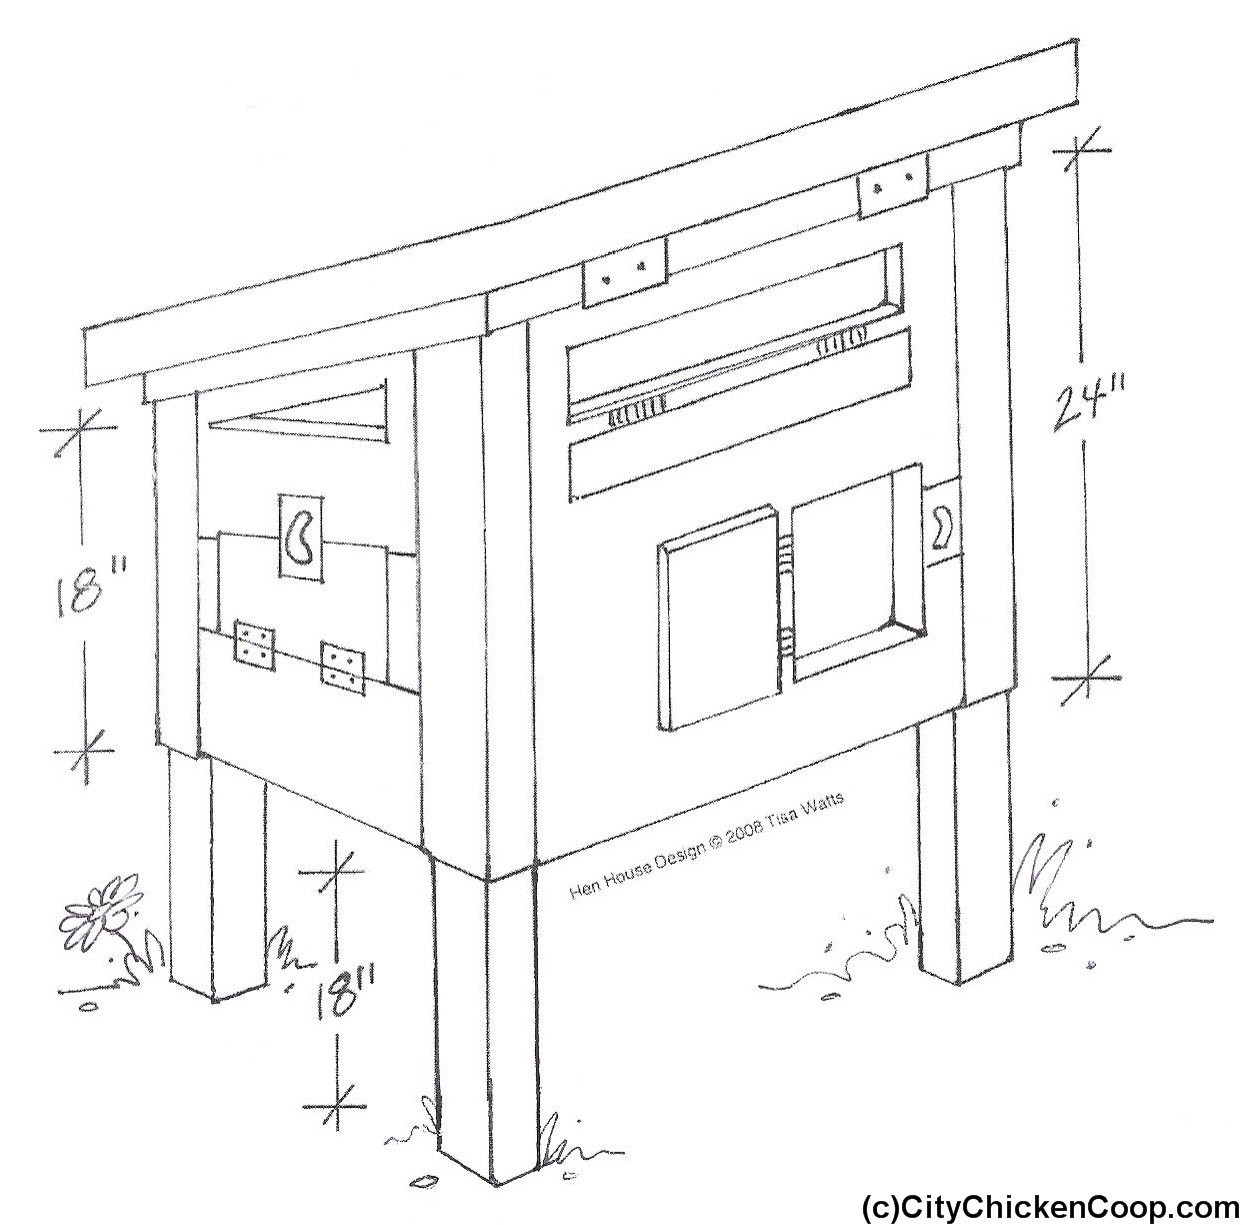 Image detail for small chicken coop building plans for Free coop plans